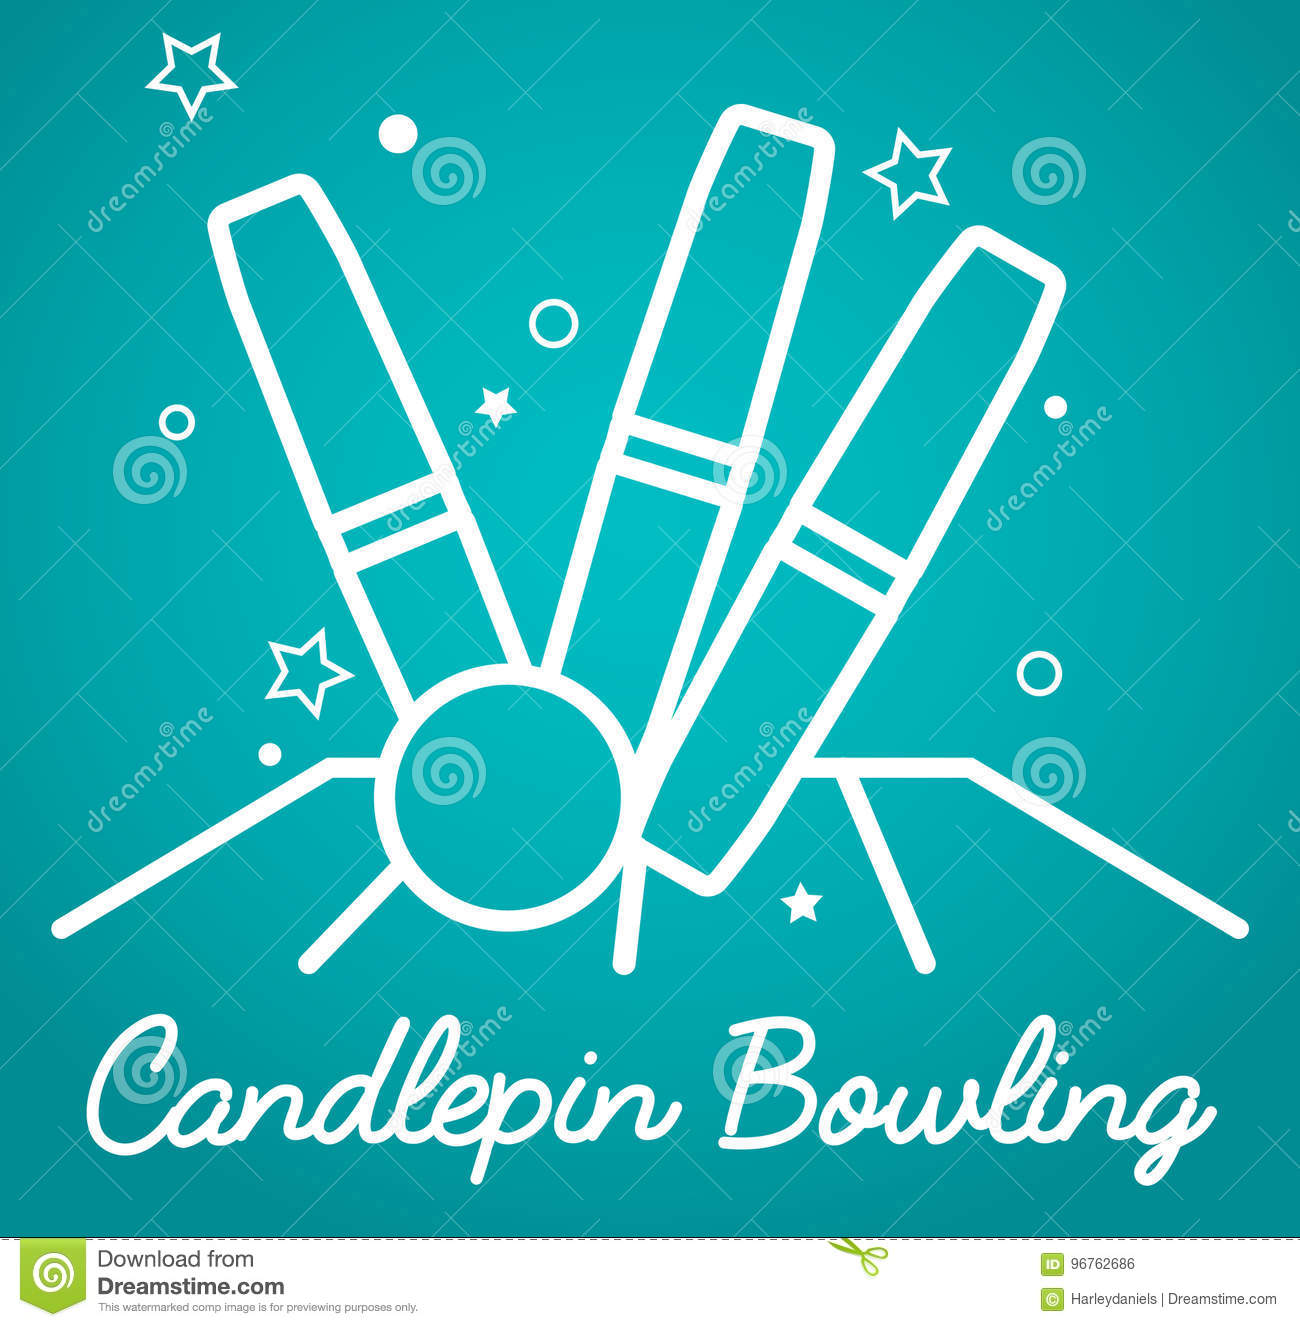 Candlepin Bowling, Simple Illustration Stock Illustration